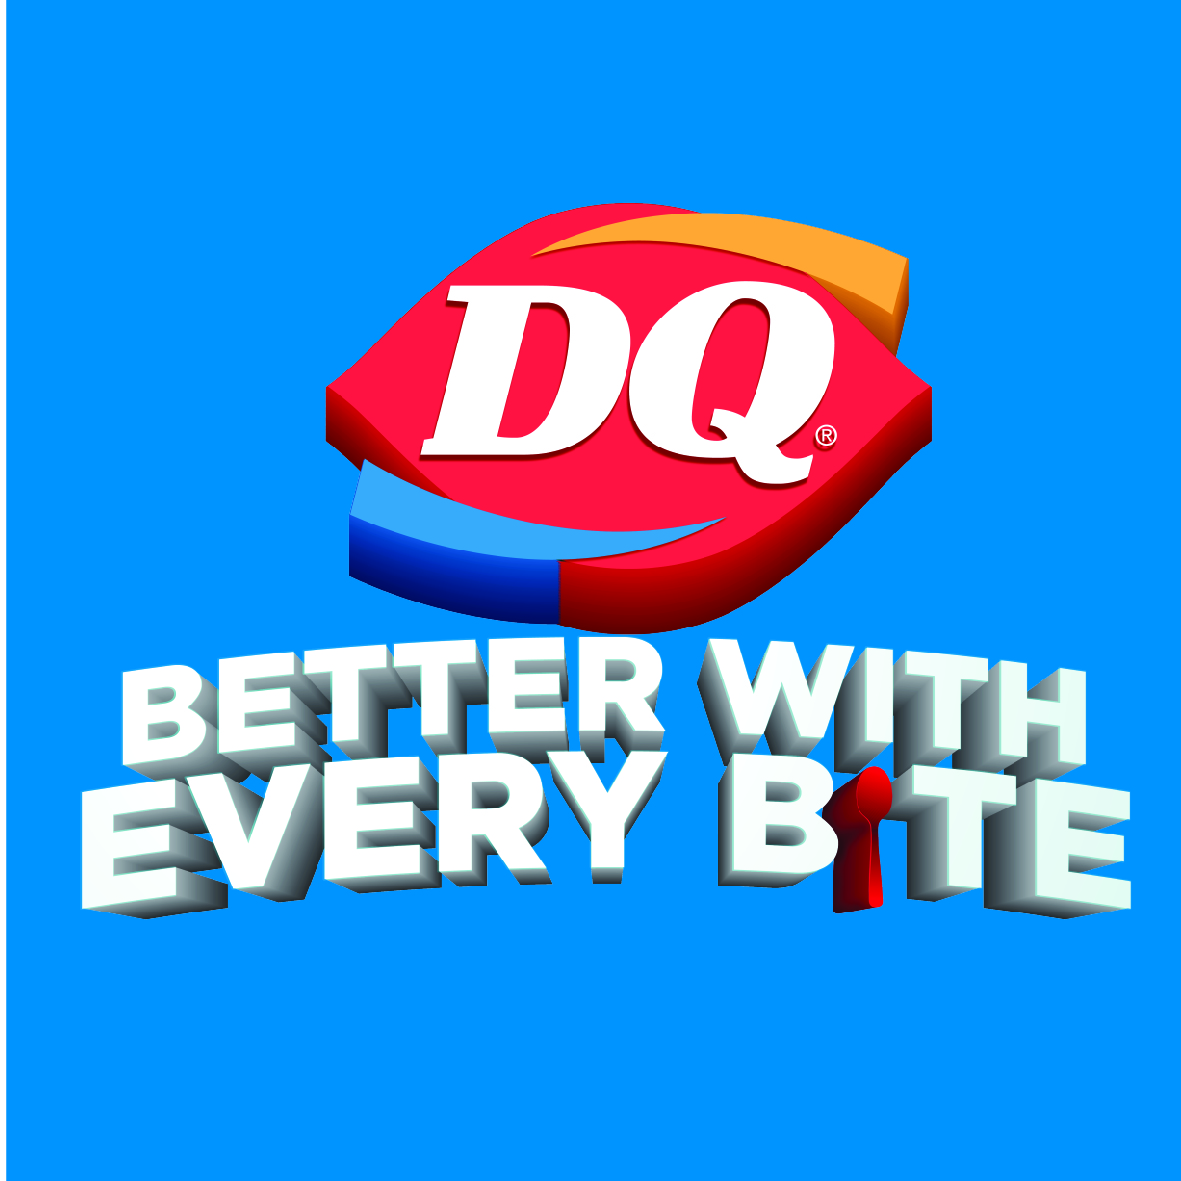 clip art dairy queen - photo #25